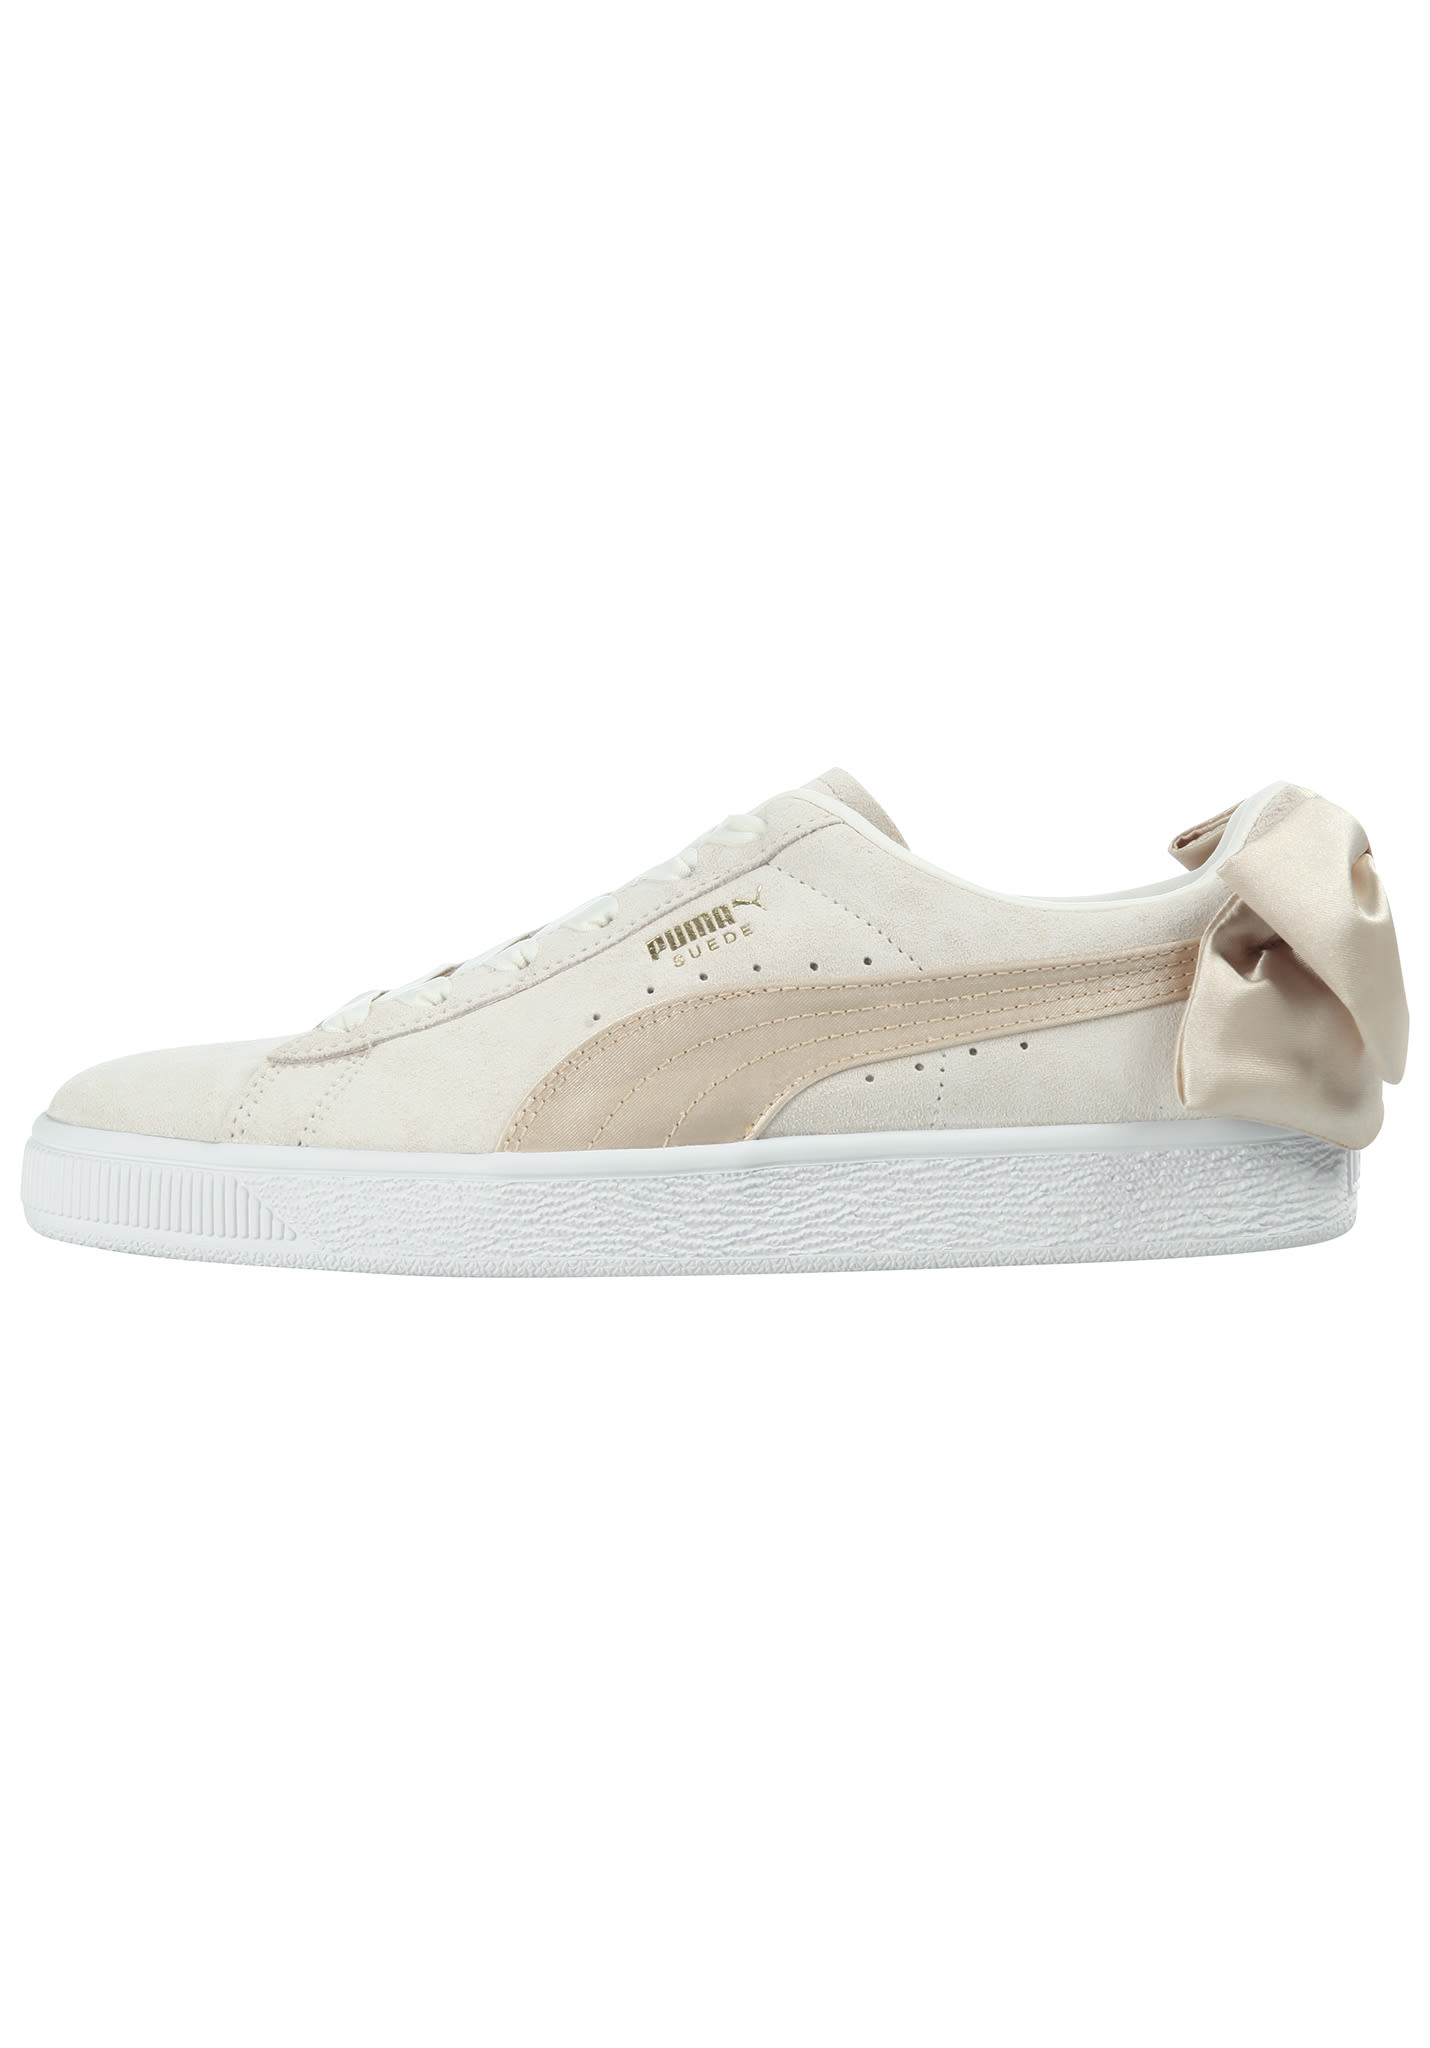 Puma Suede Bow Varsity - Sneakers for Women - Beige - Planet Sports 03be7f436